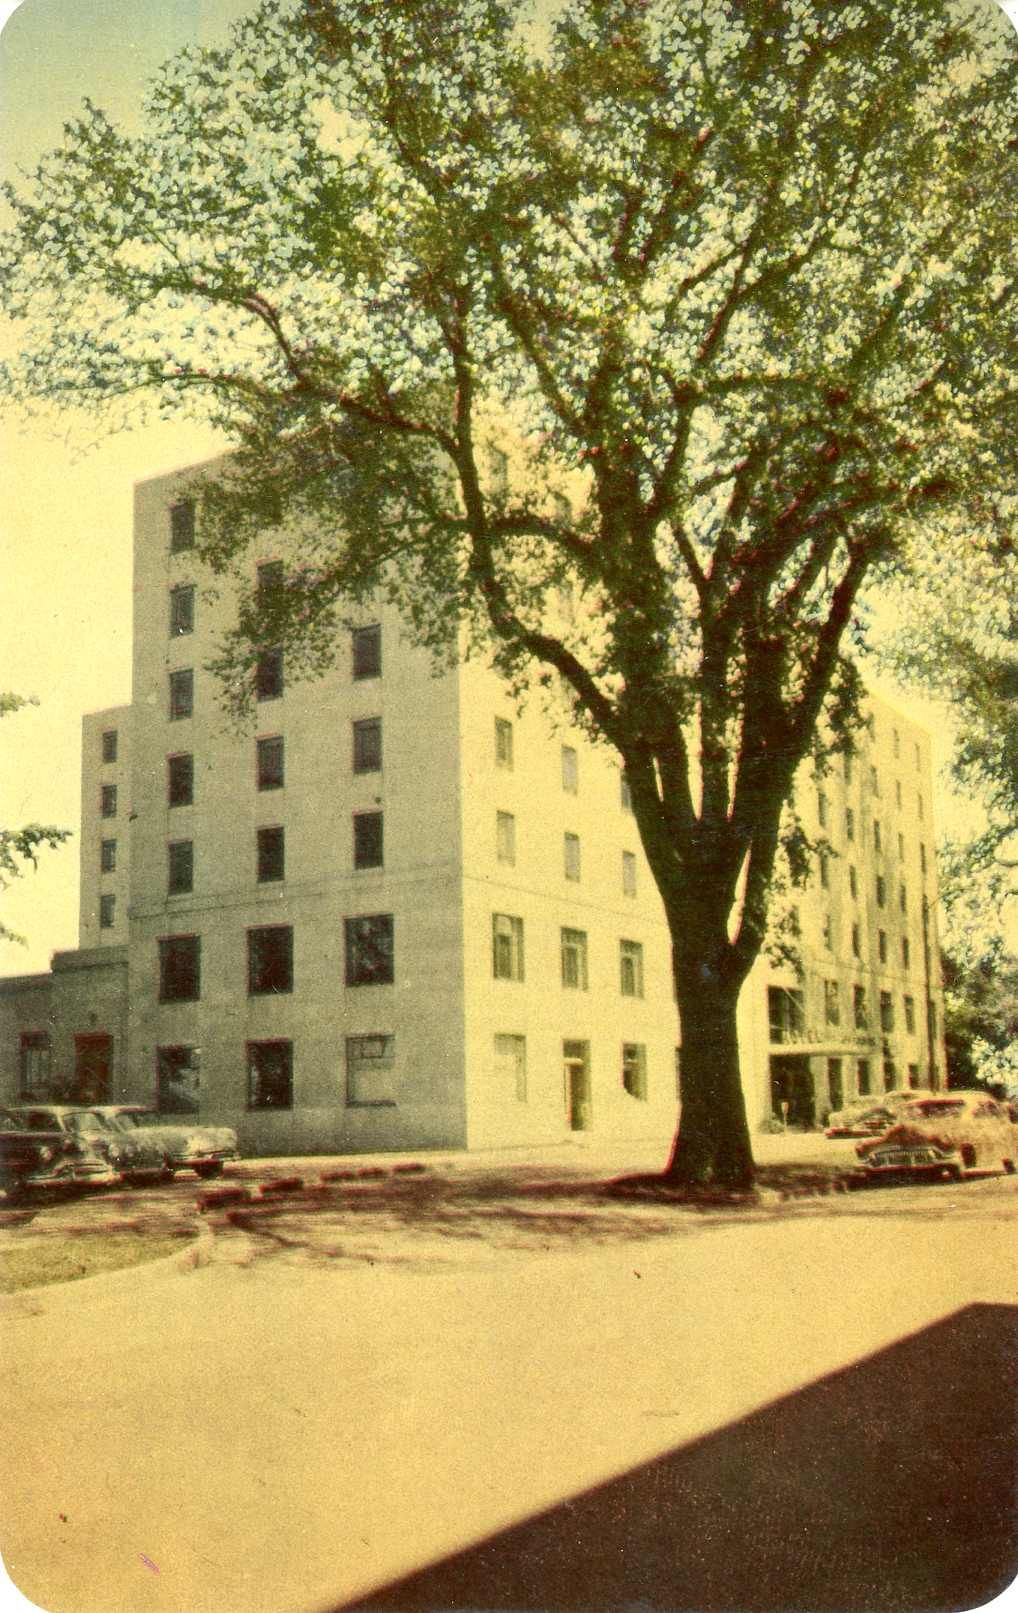 1950's Beaverbrook hotel Fredericton New Brunswick Canada.Hagins collection.